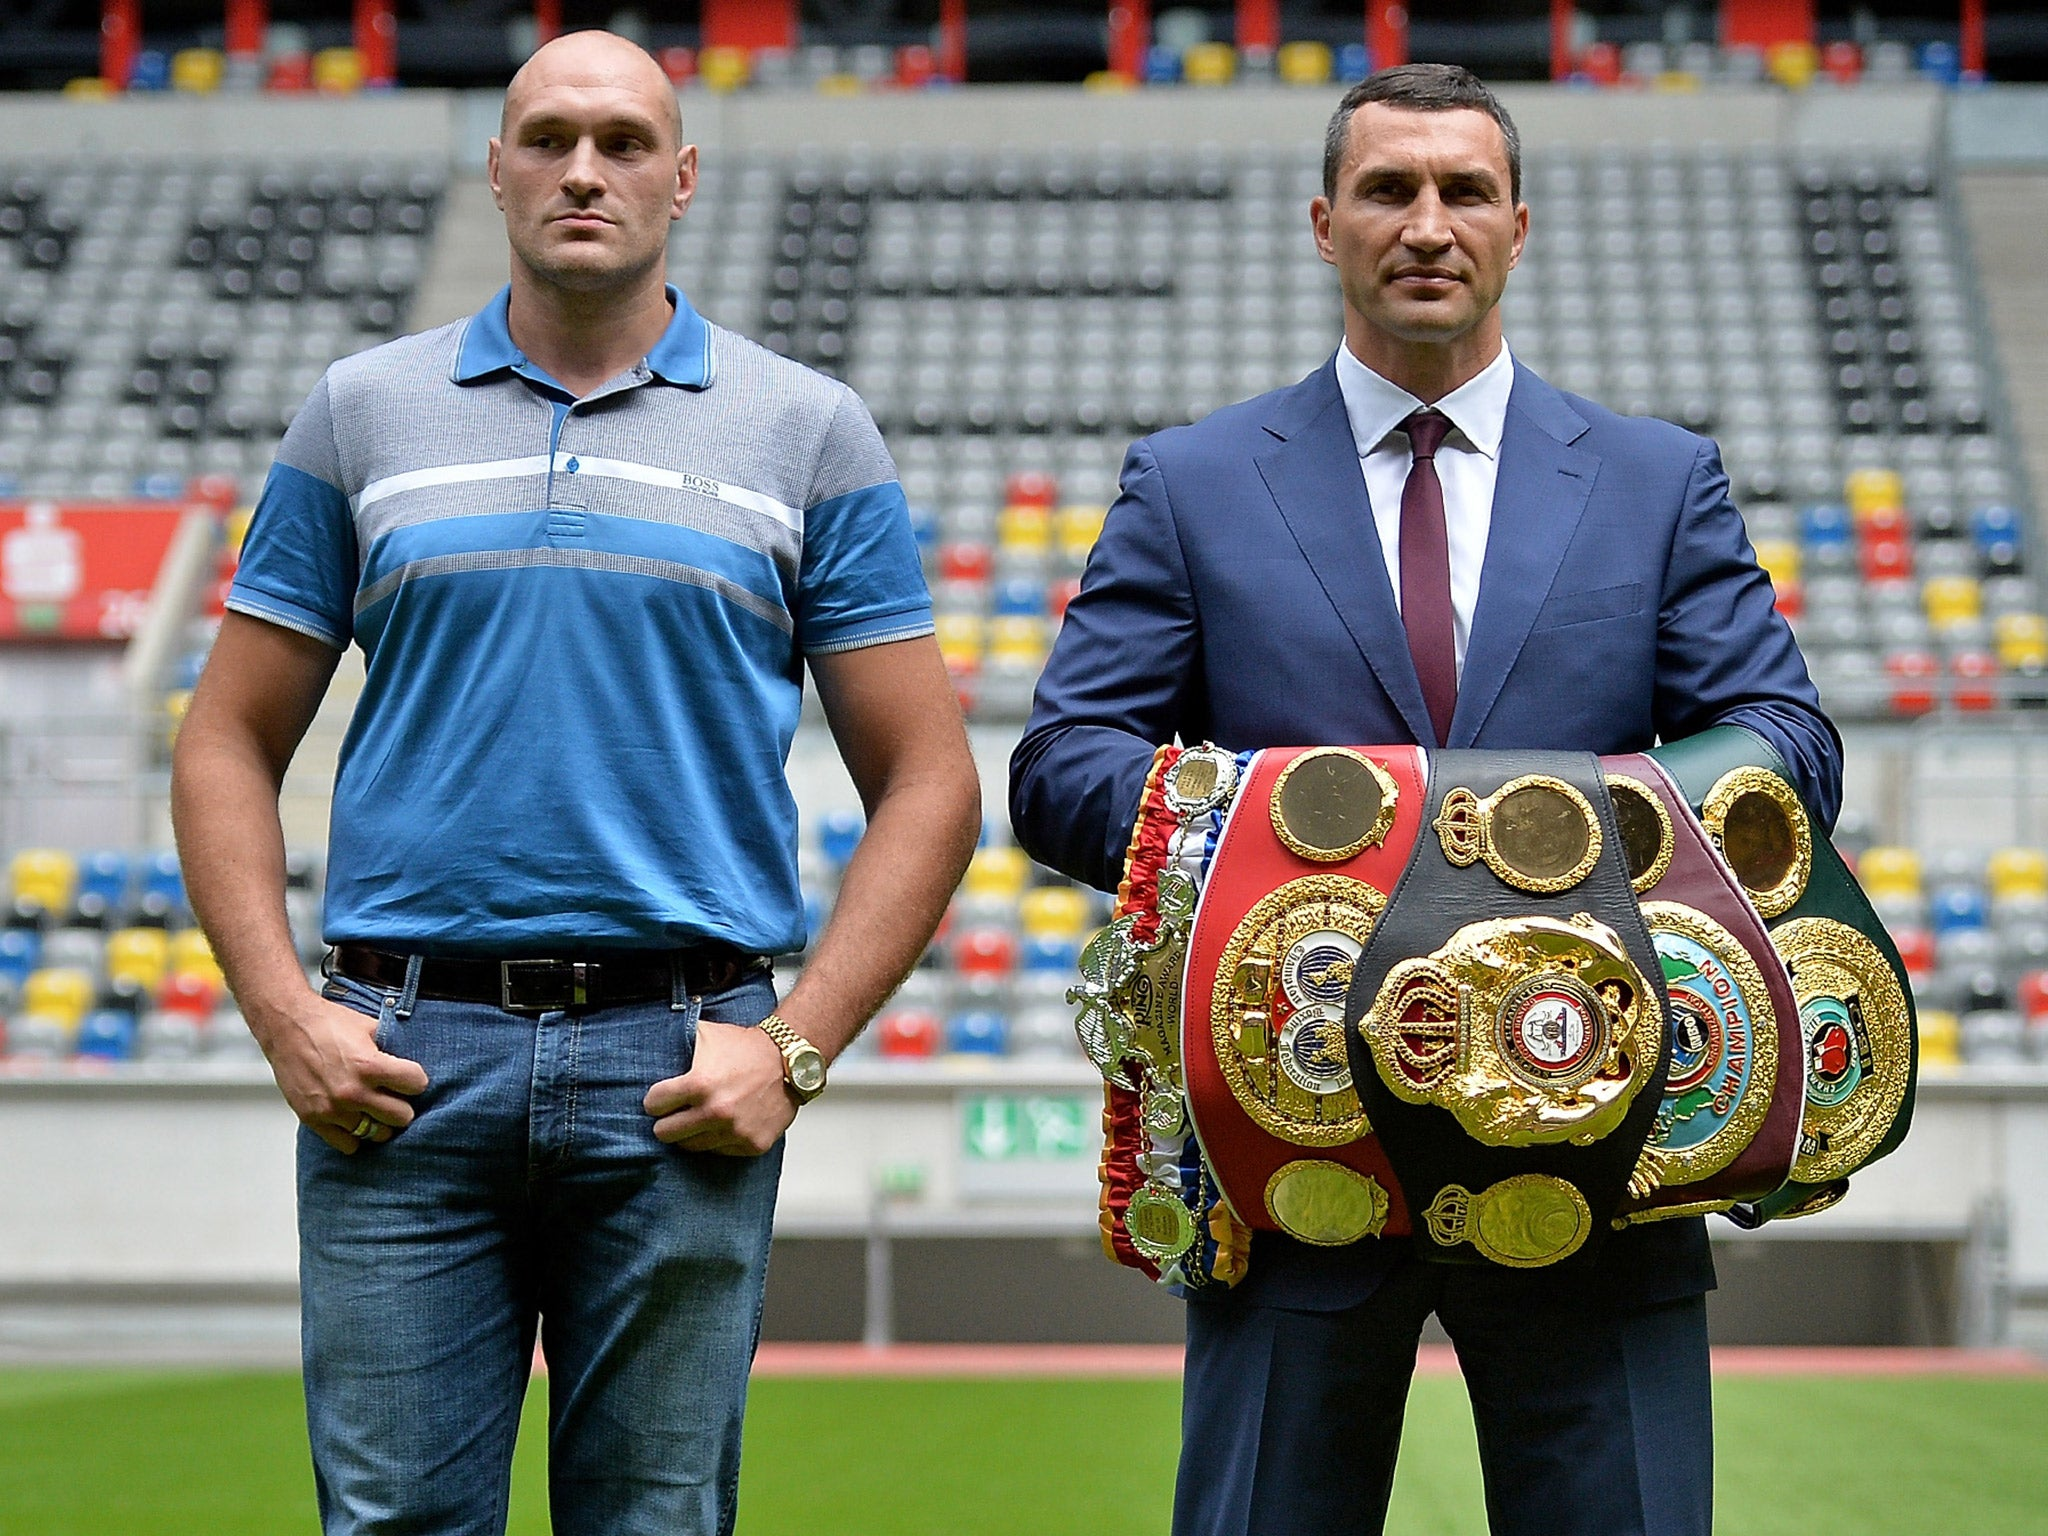 Wladimir Klitschko Vs Tyson Fury World Heavyweight Title